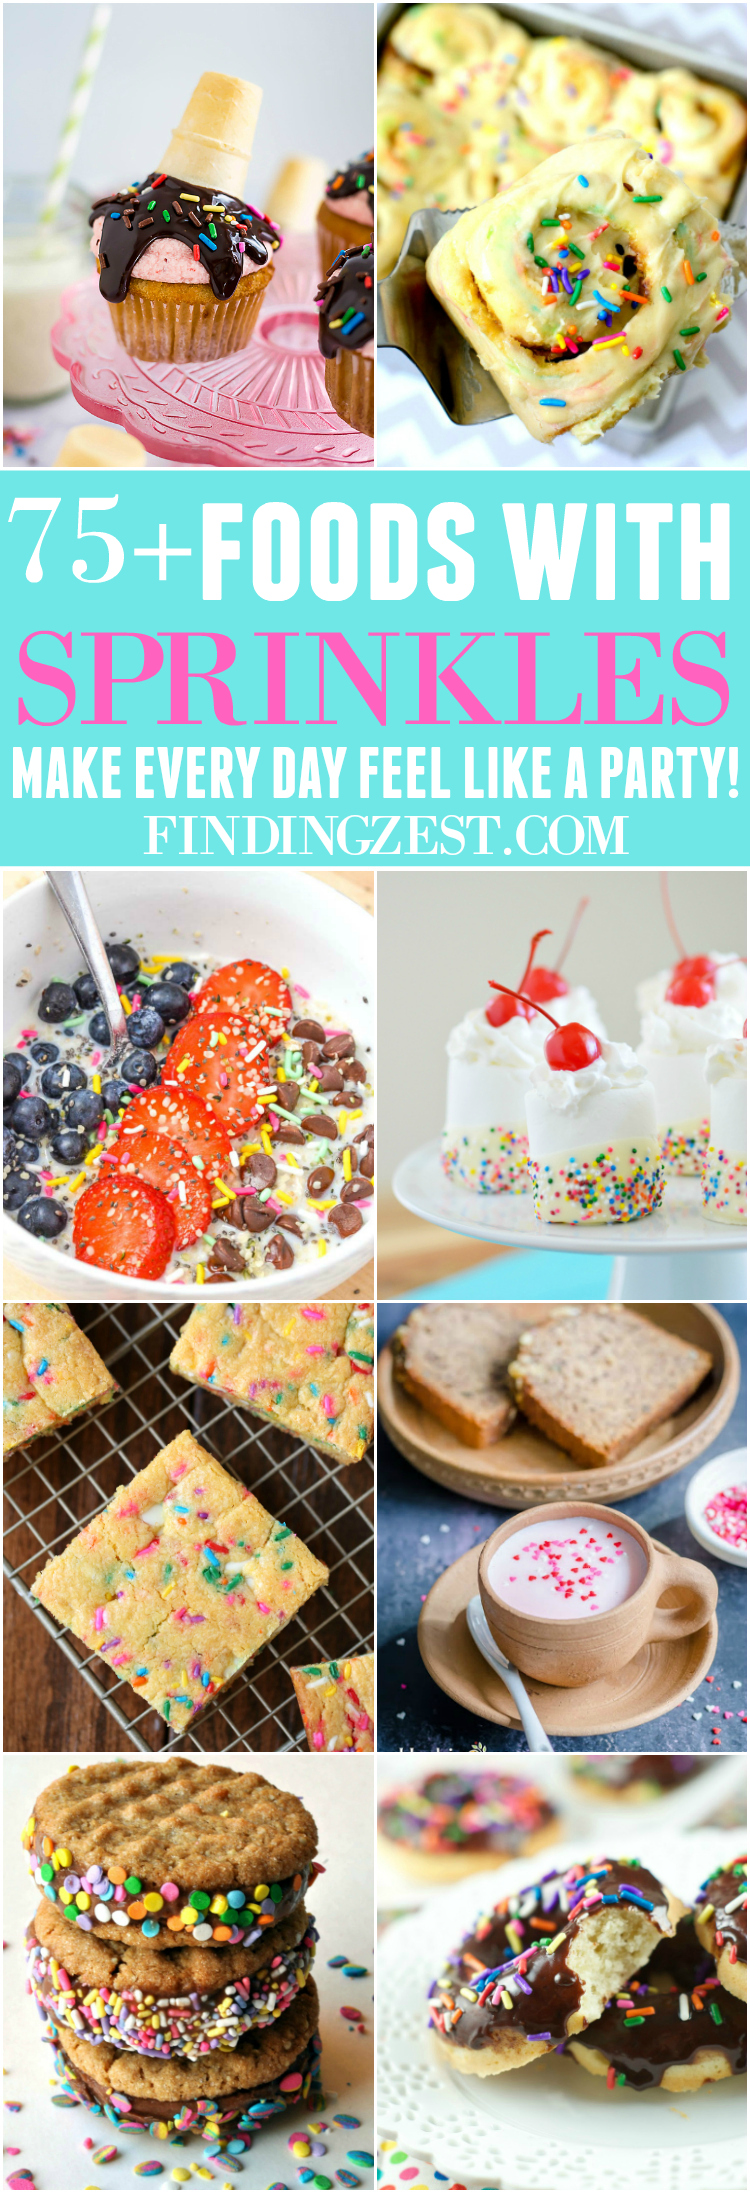 Get over 75 great foods with sprinkles including fun party ideas, easy recipes, homemade, gluten free and more! Make every day feel like a party with these cakes, cupcakes, cookies, drinks, breakfast foods, snacks, frozen treats and more!